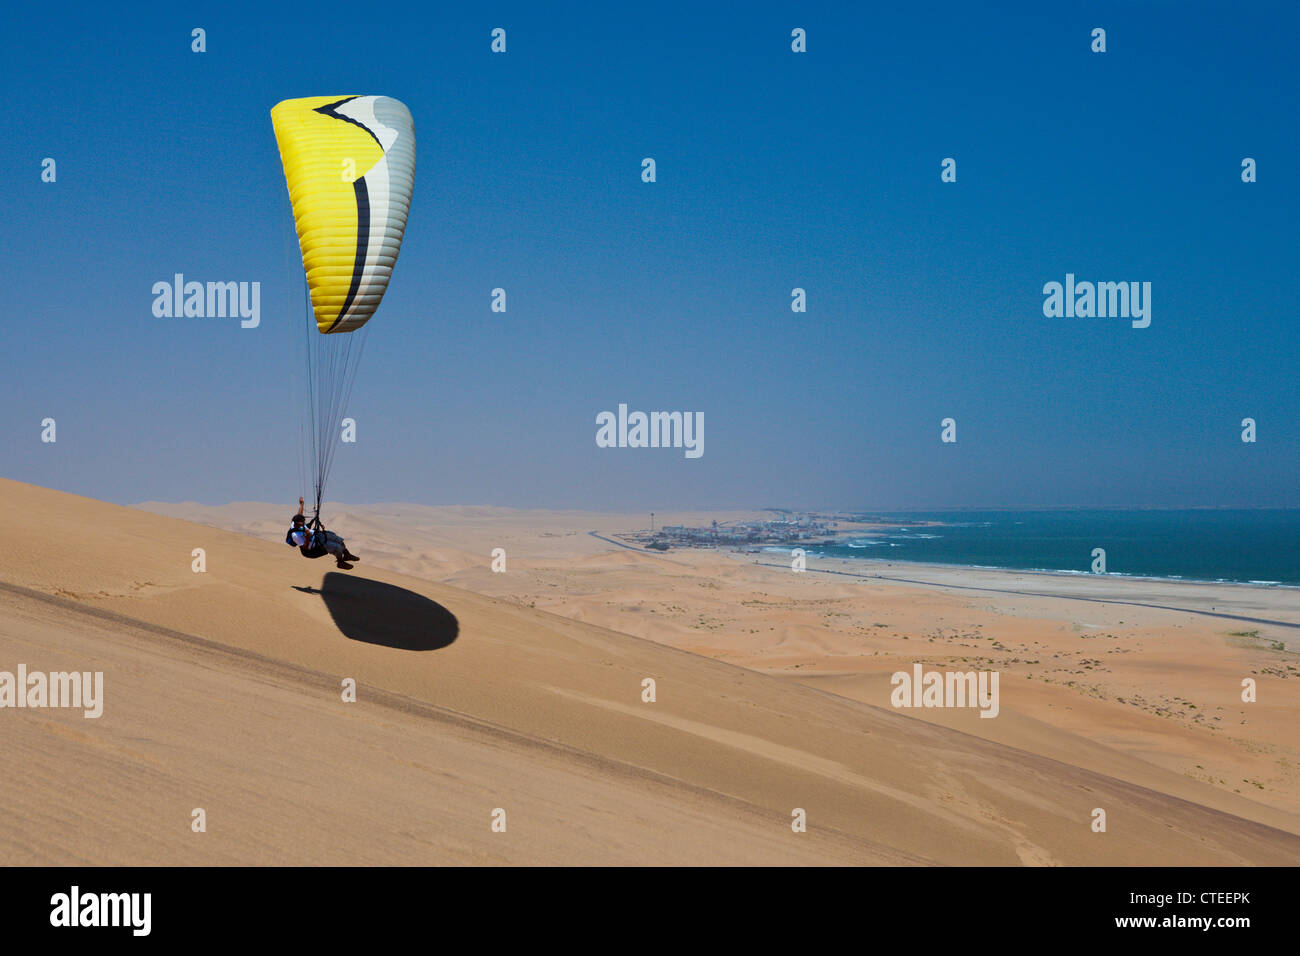 Paragliding over Dunes of Namib Desert, Long Beach, Swakopmund, Namibia - Stock Image